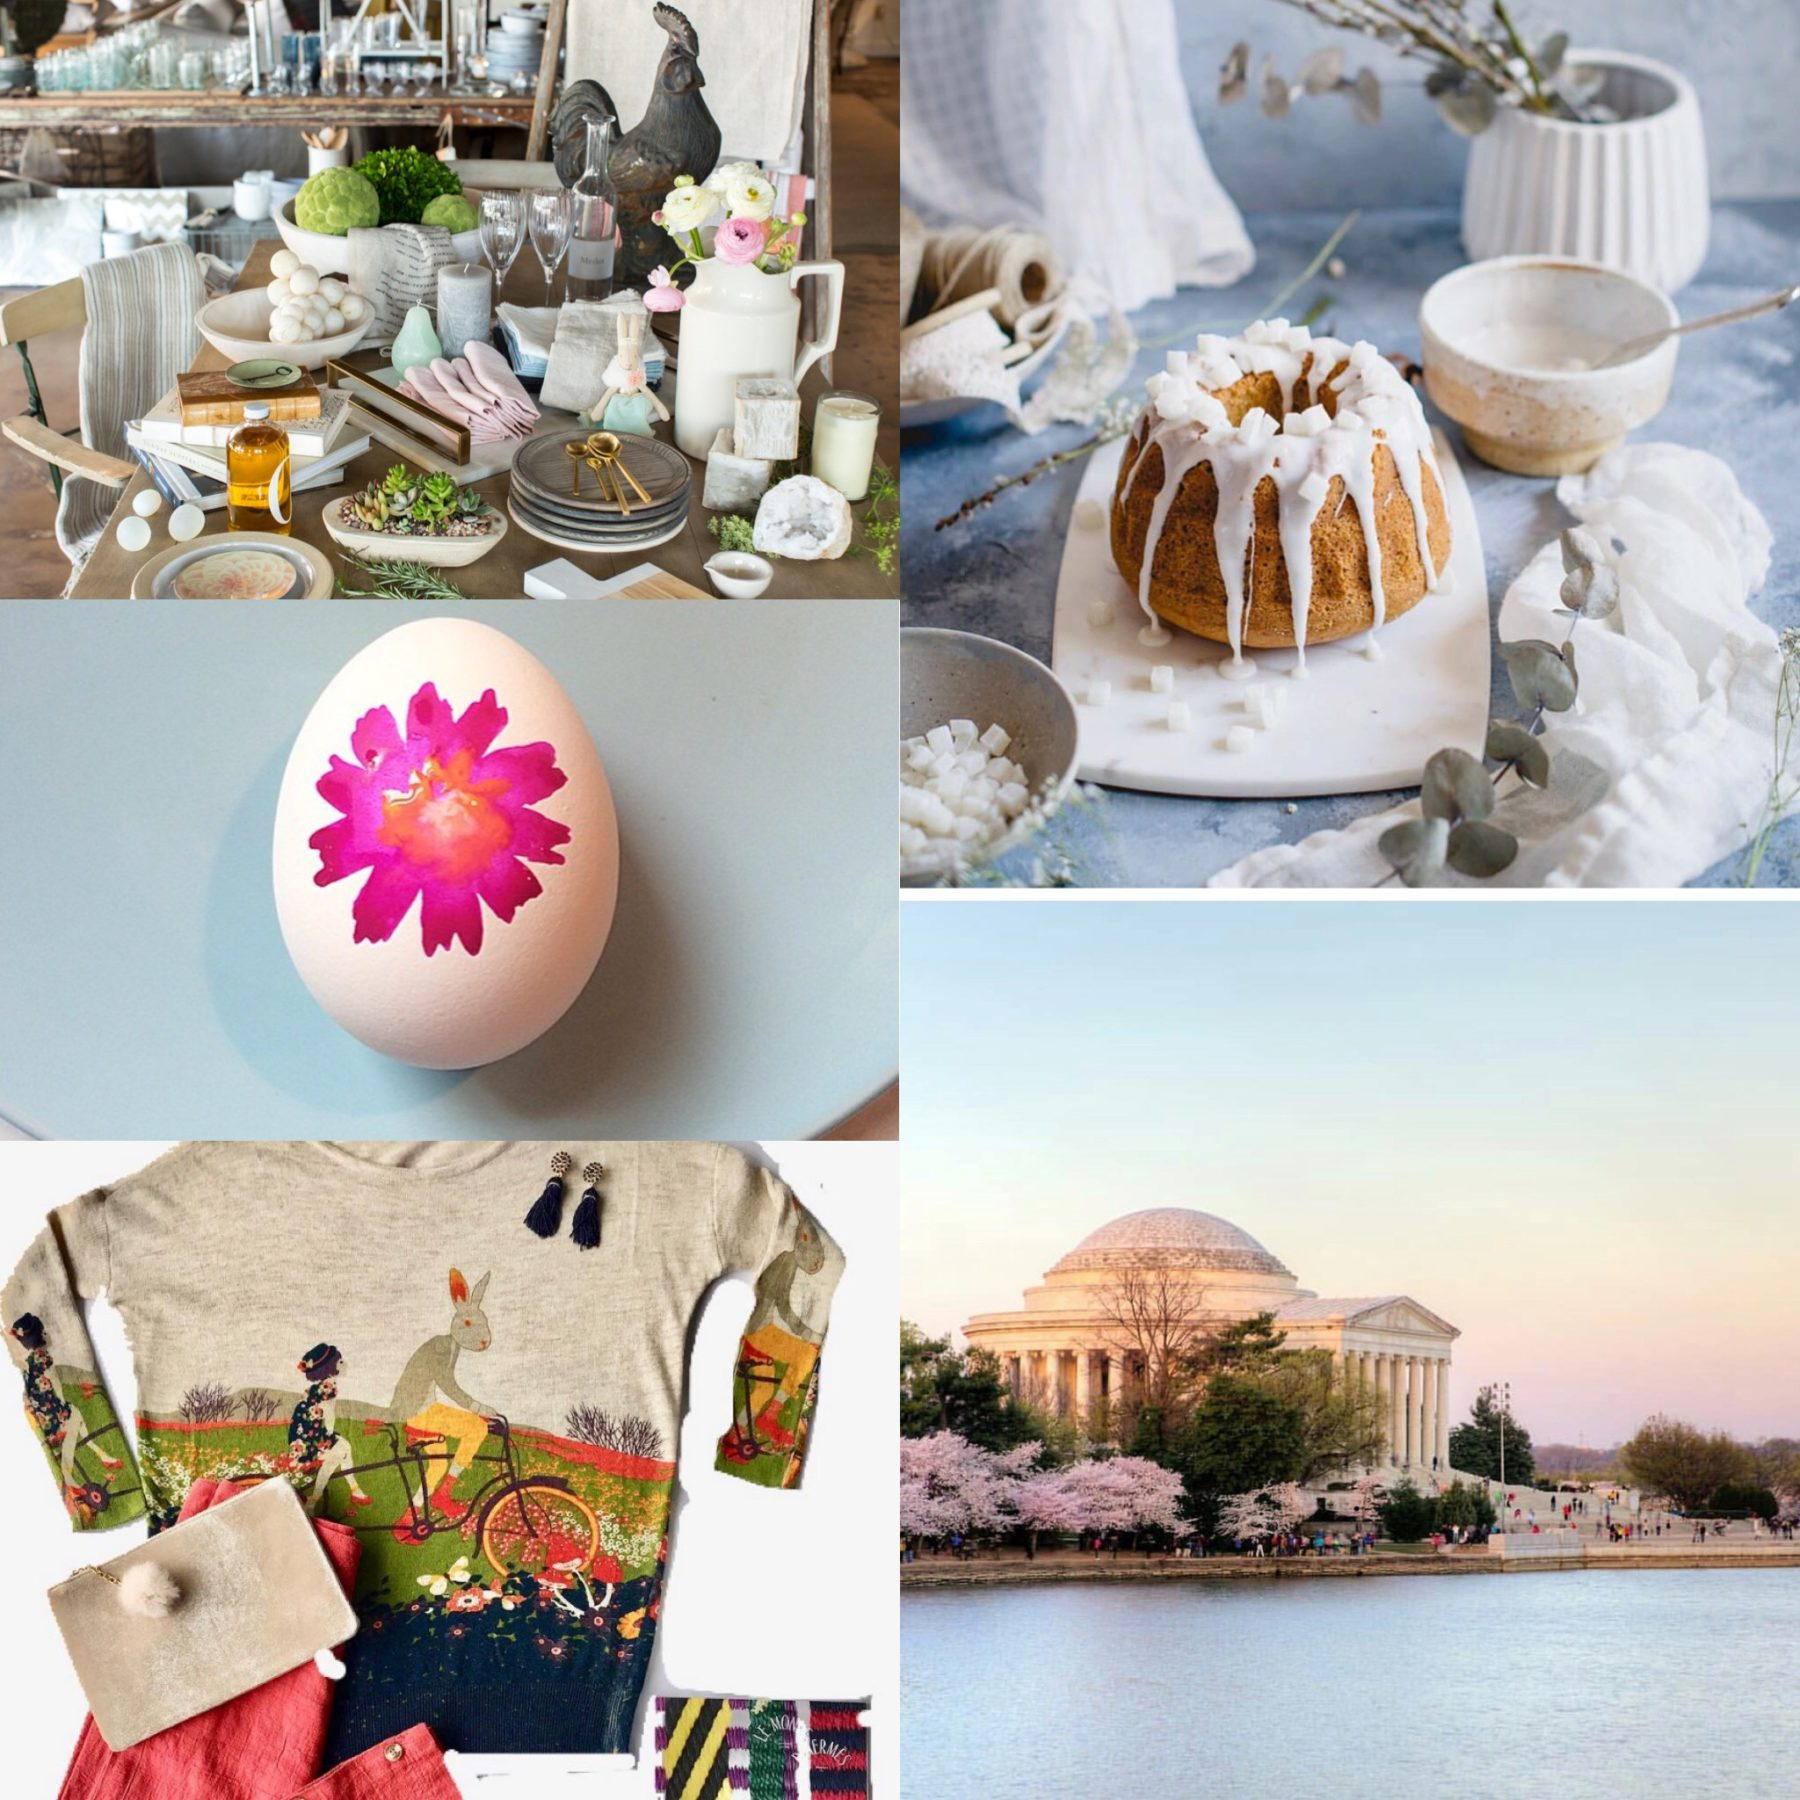 Company Memo: Easter Finds, Cherry Blossoms, and Coconut Cake